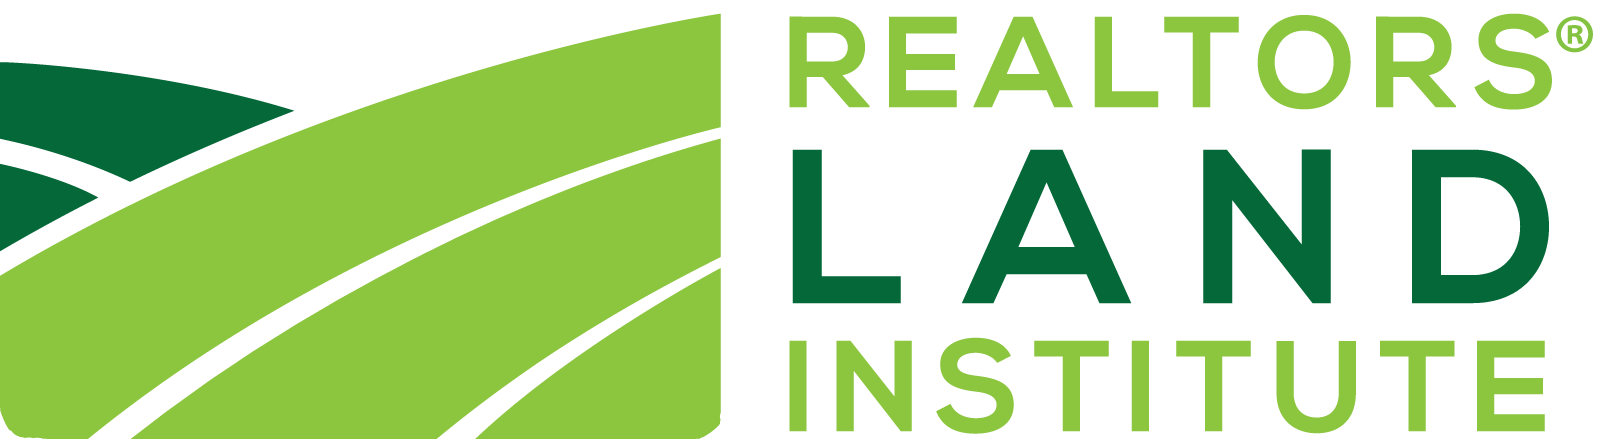 Member of Realtors Land institute